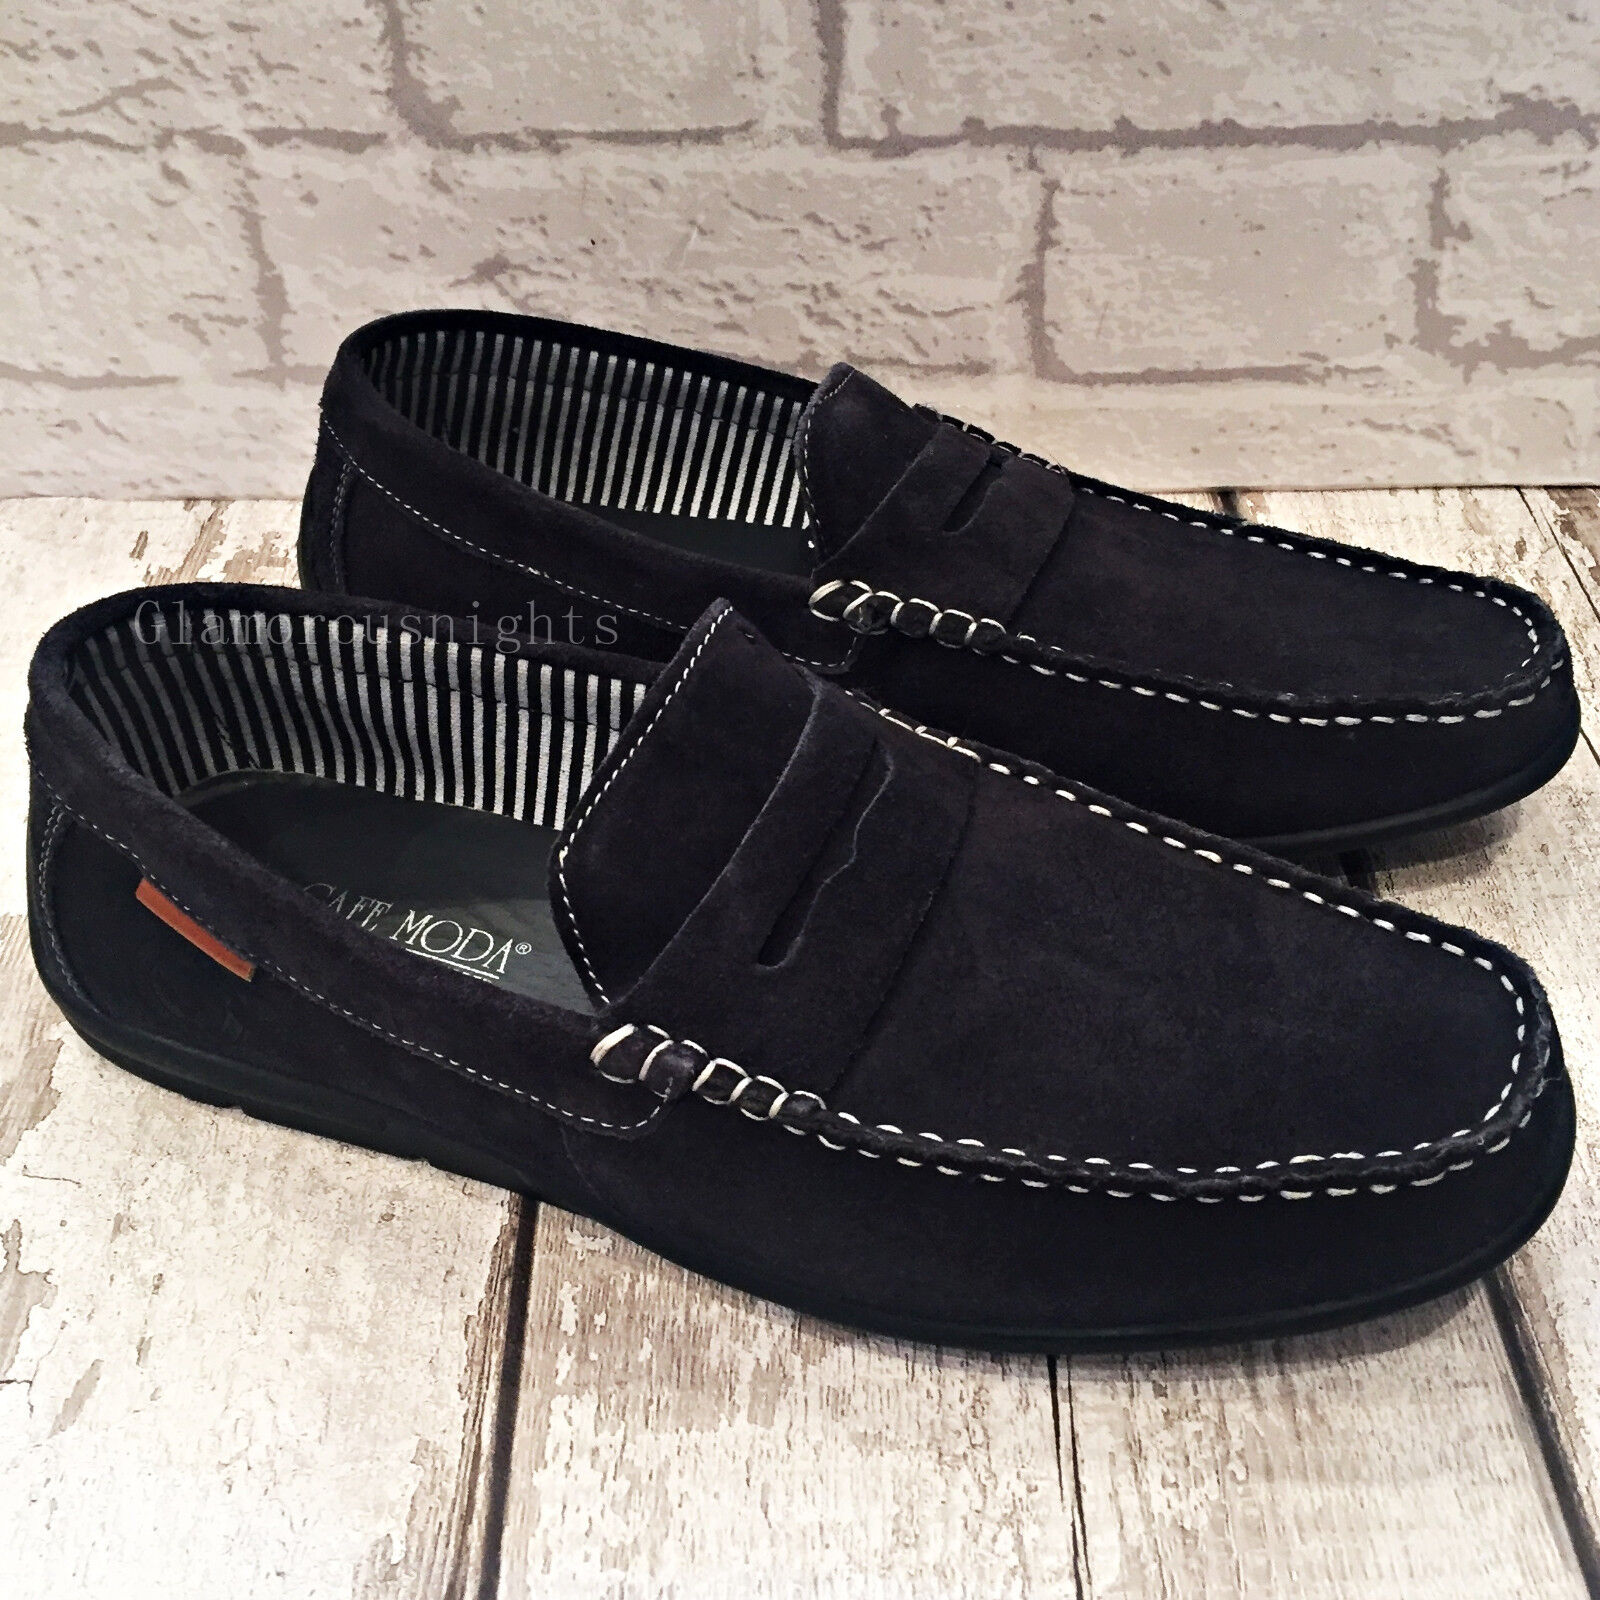 Mens Navy bluee 100% Suede Slip leather Slip On Loafer Casual Driving shoes Size